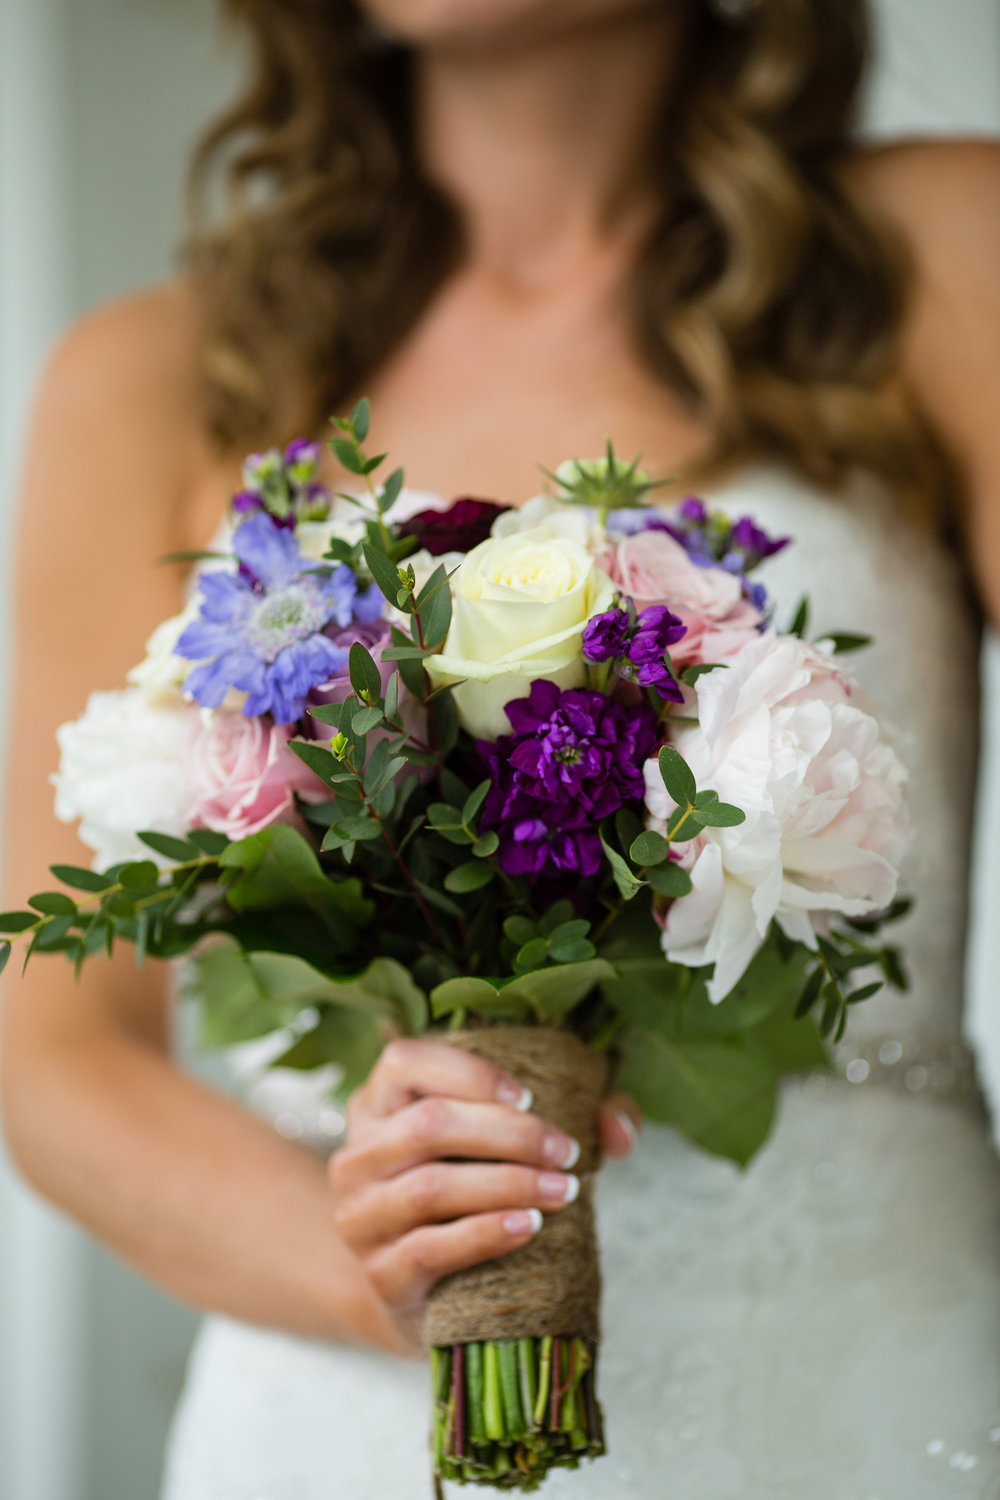 Lepold-Johnson-bridal-bouquet-up-at.jpg